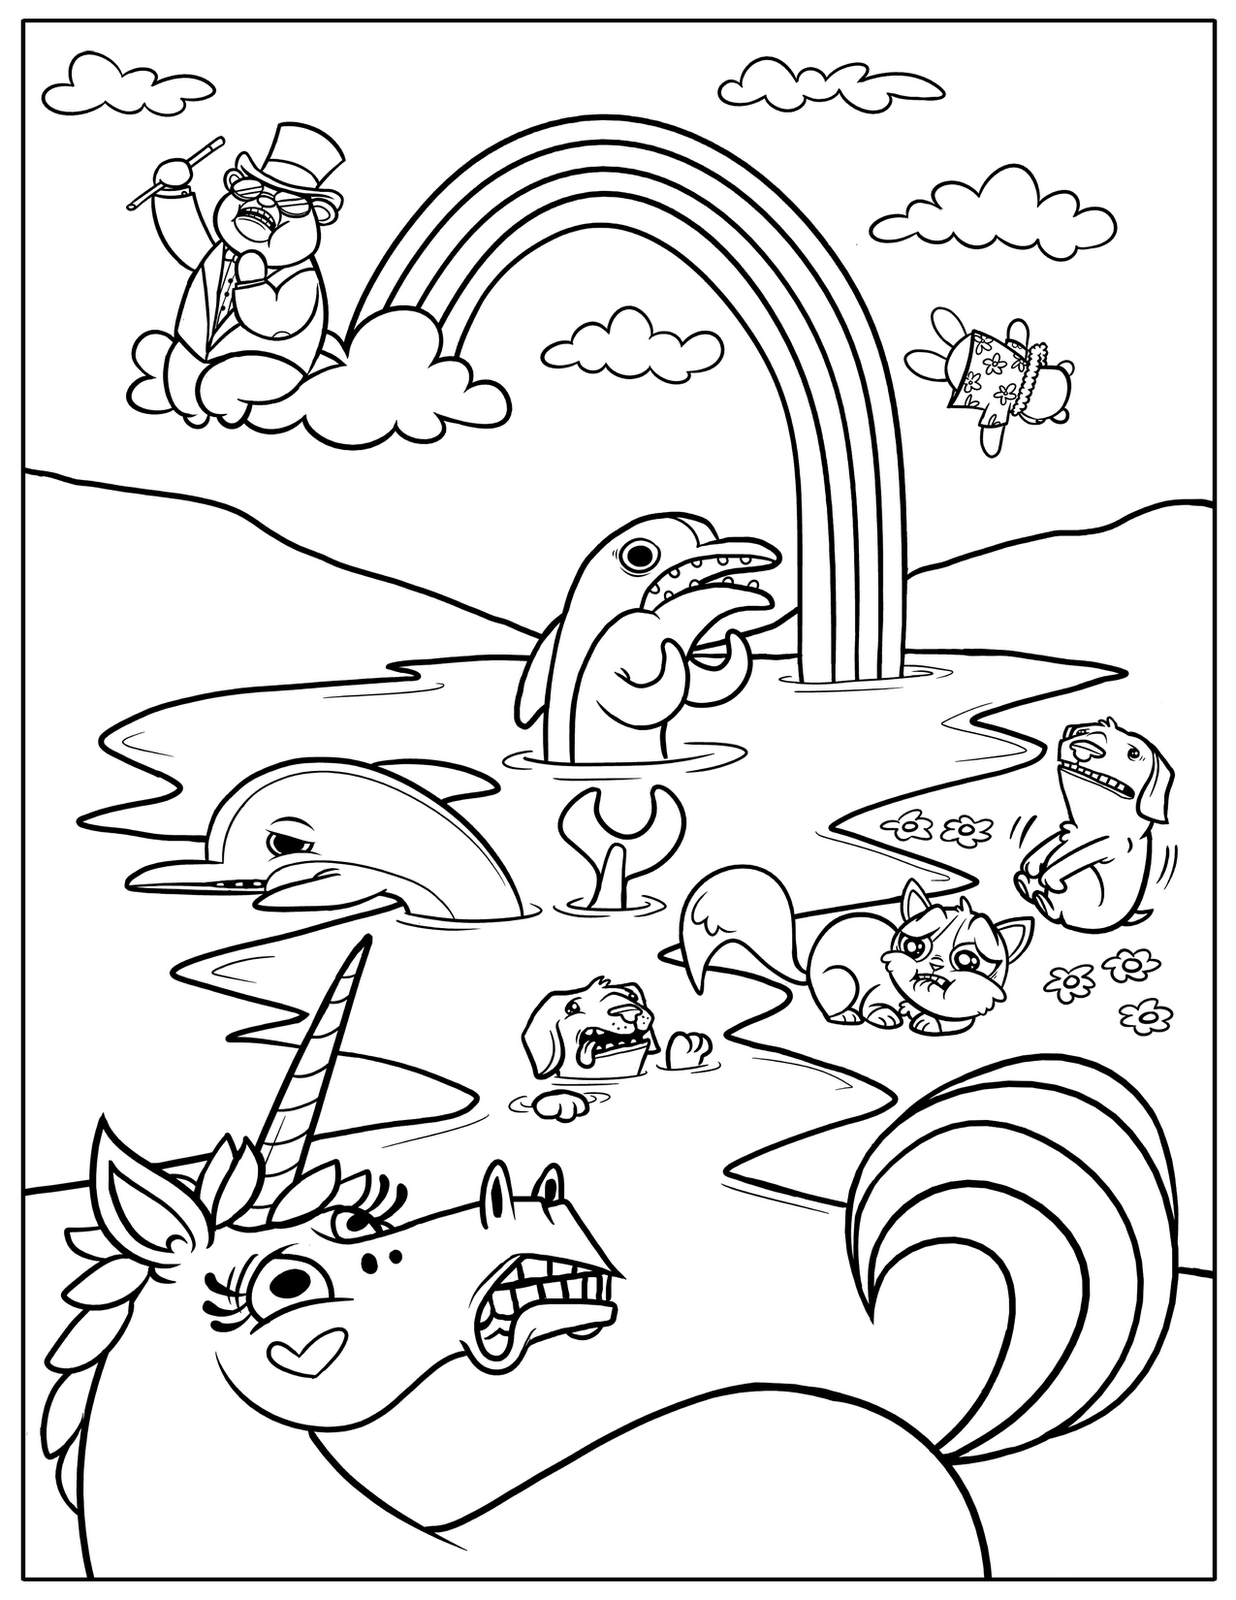 printable coloring pages for teenagers printable raccoon coloring pages for kids cool2bkids for teenagers pages coloring printable